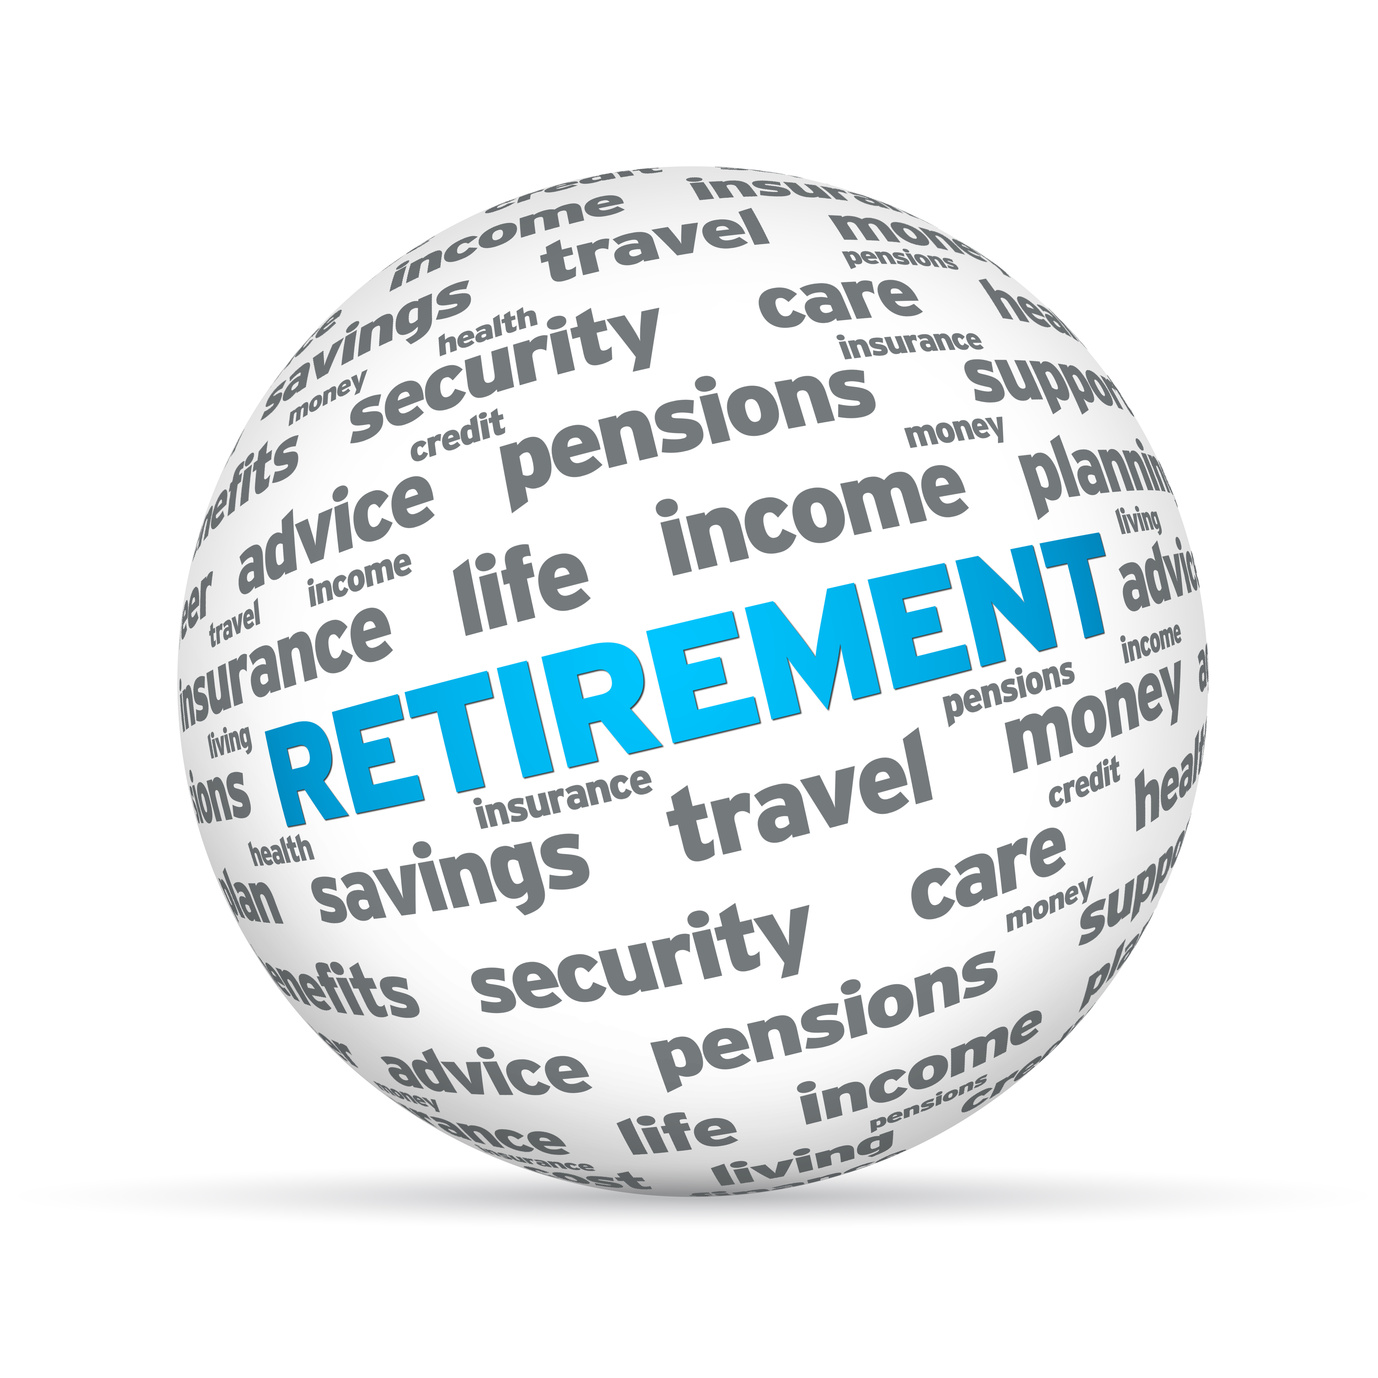 retirement-planning-advisors